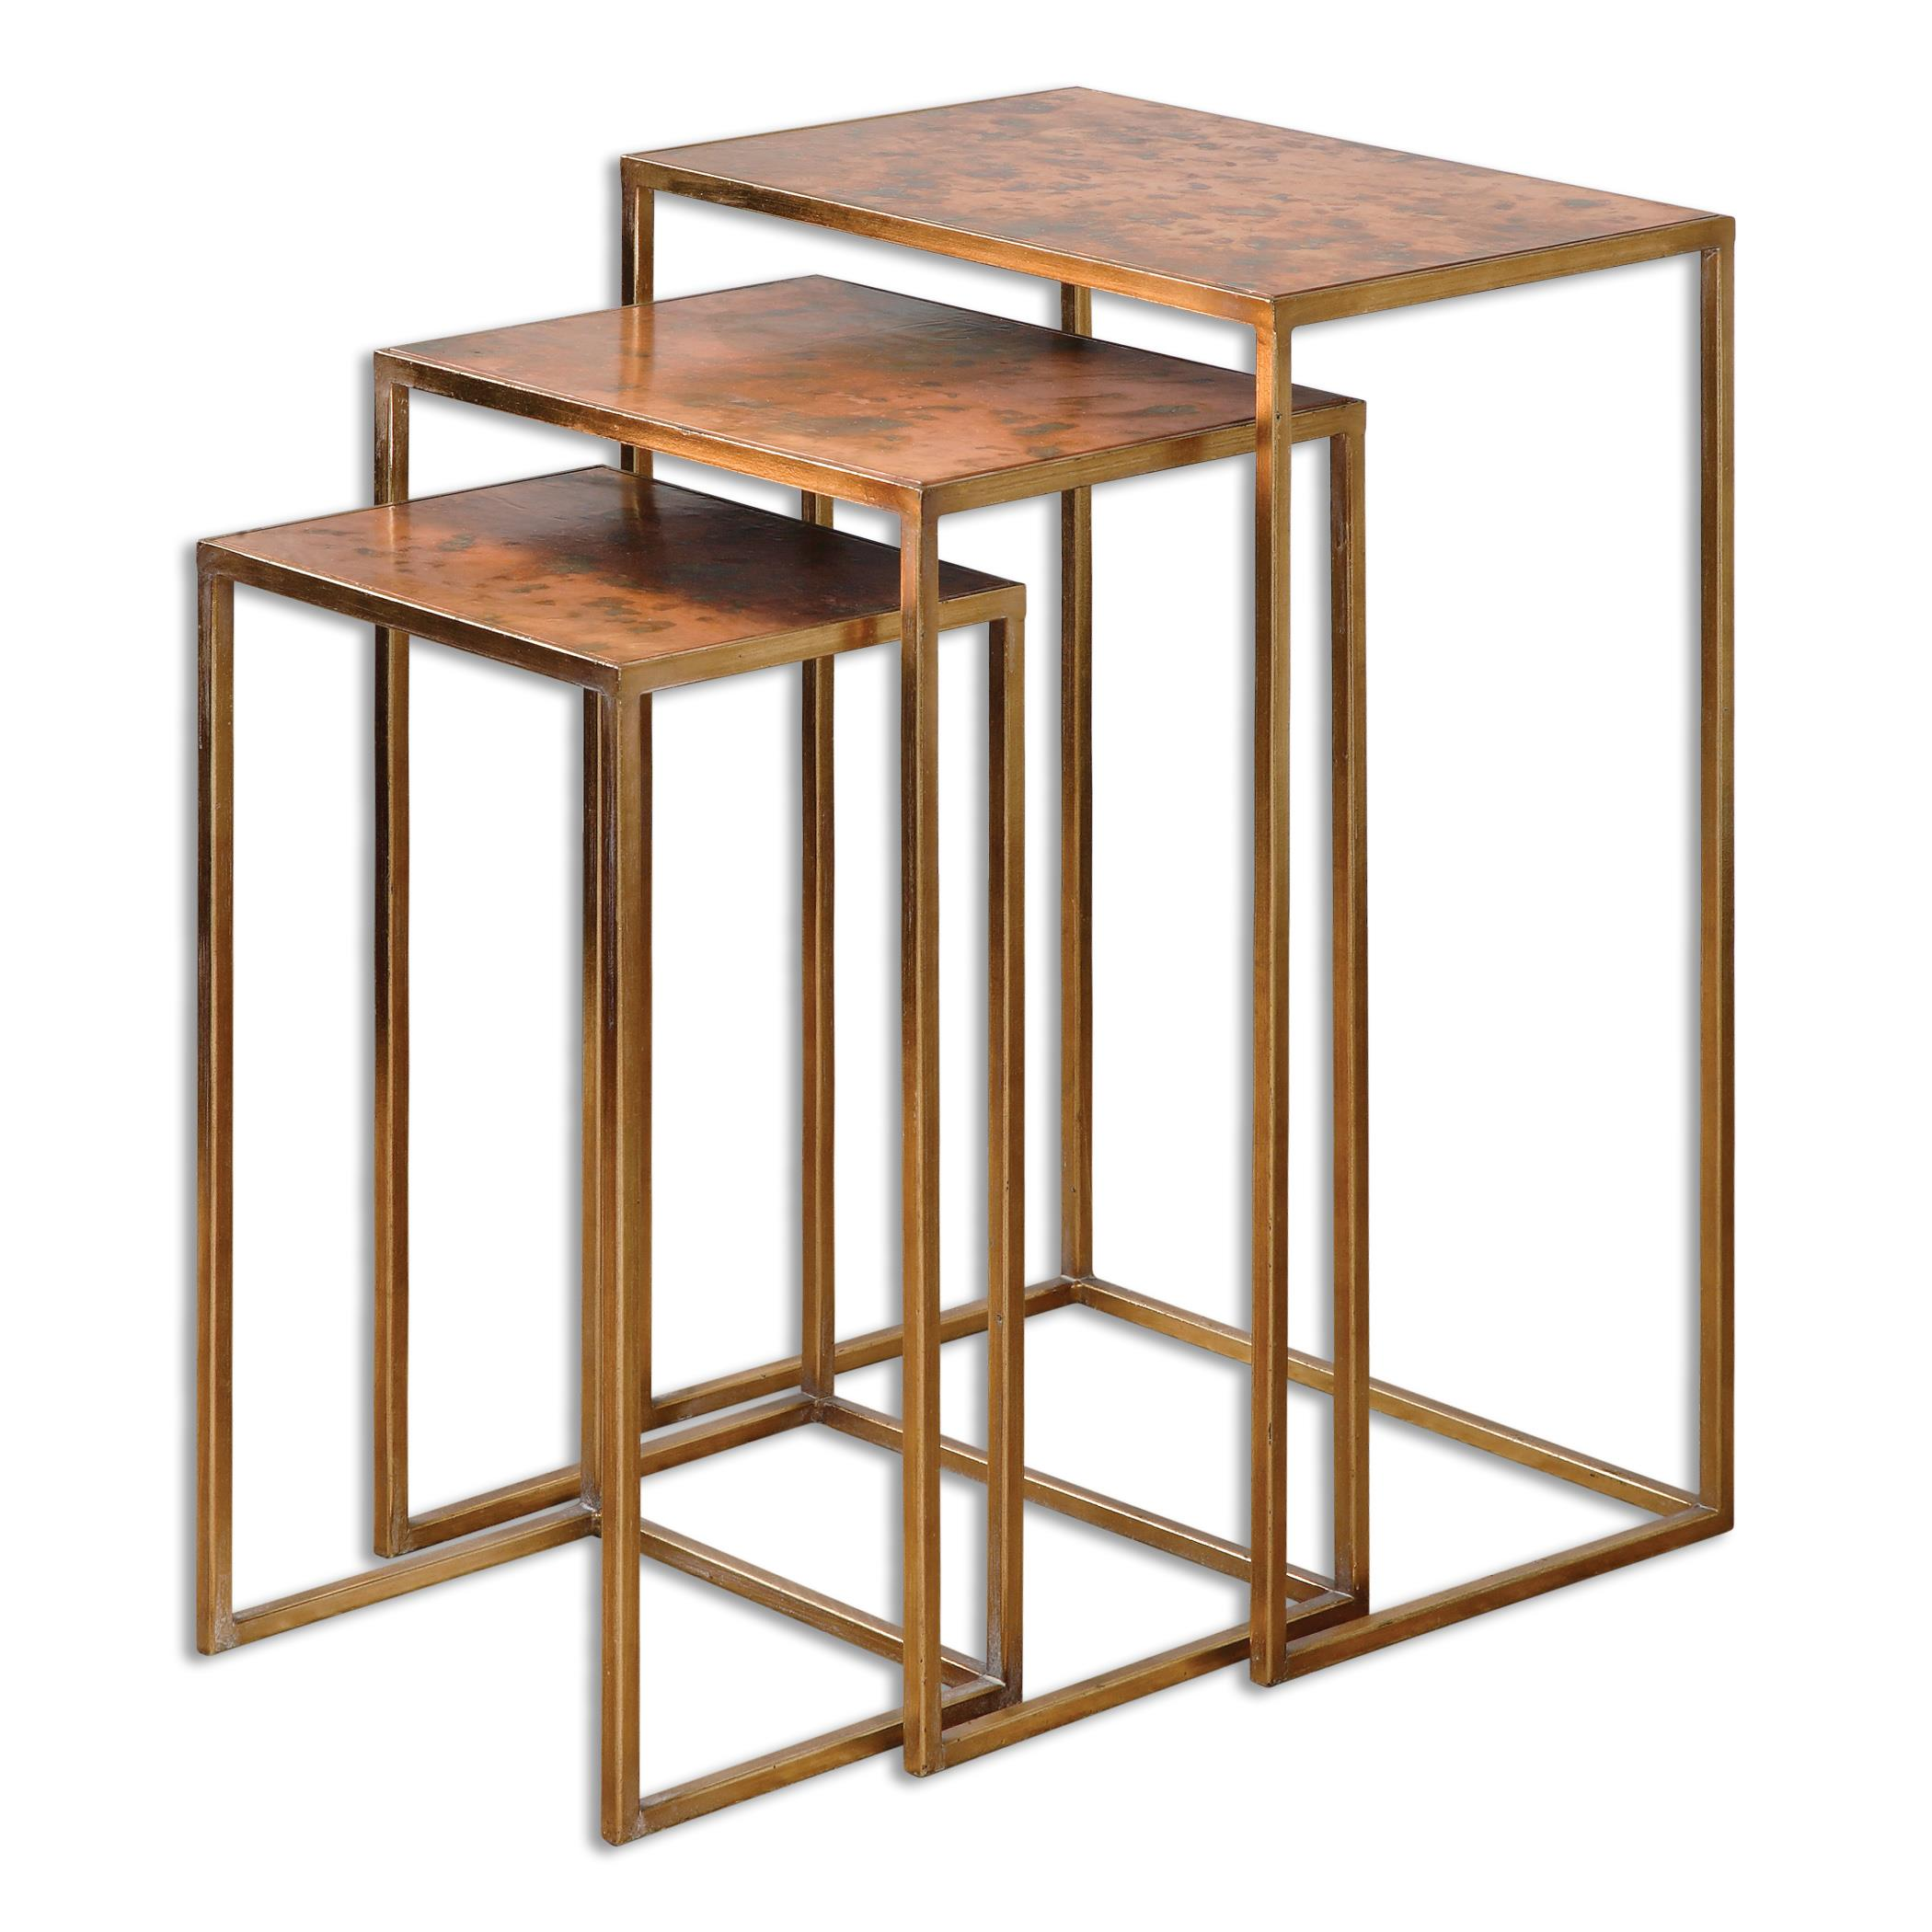 Accent Furniture - Occasional Tables Copres Oxidized Nesting Tables Set/3 by Uttermost at Del Sol Furniture